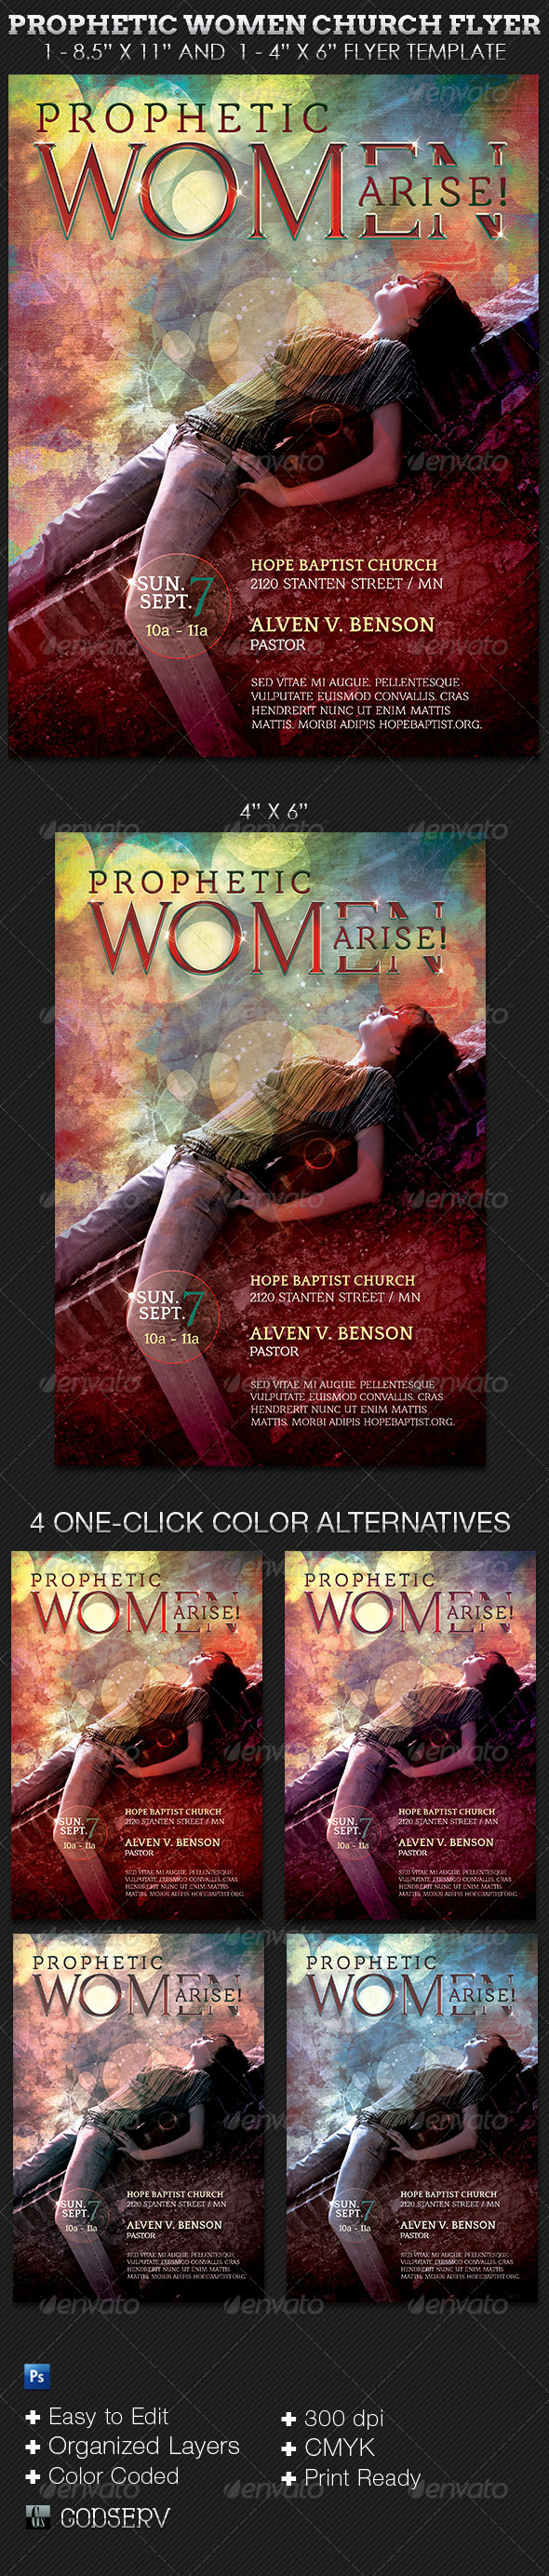 Event Flyer Templates Free Downloads Postermywall Womens Ministry Flyer Templates Beautiful Scenery